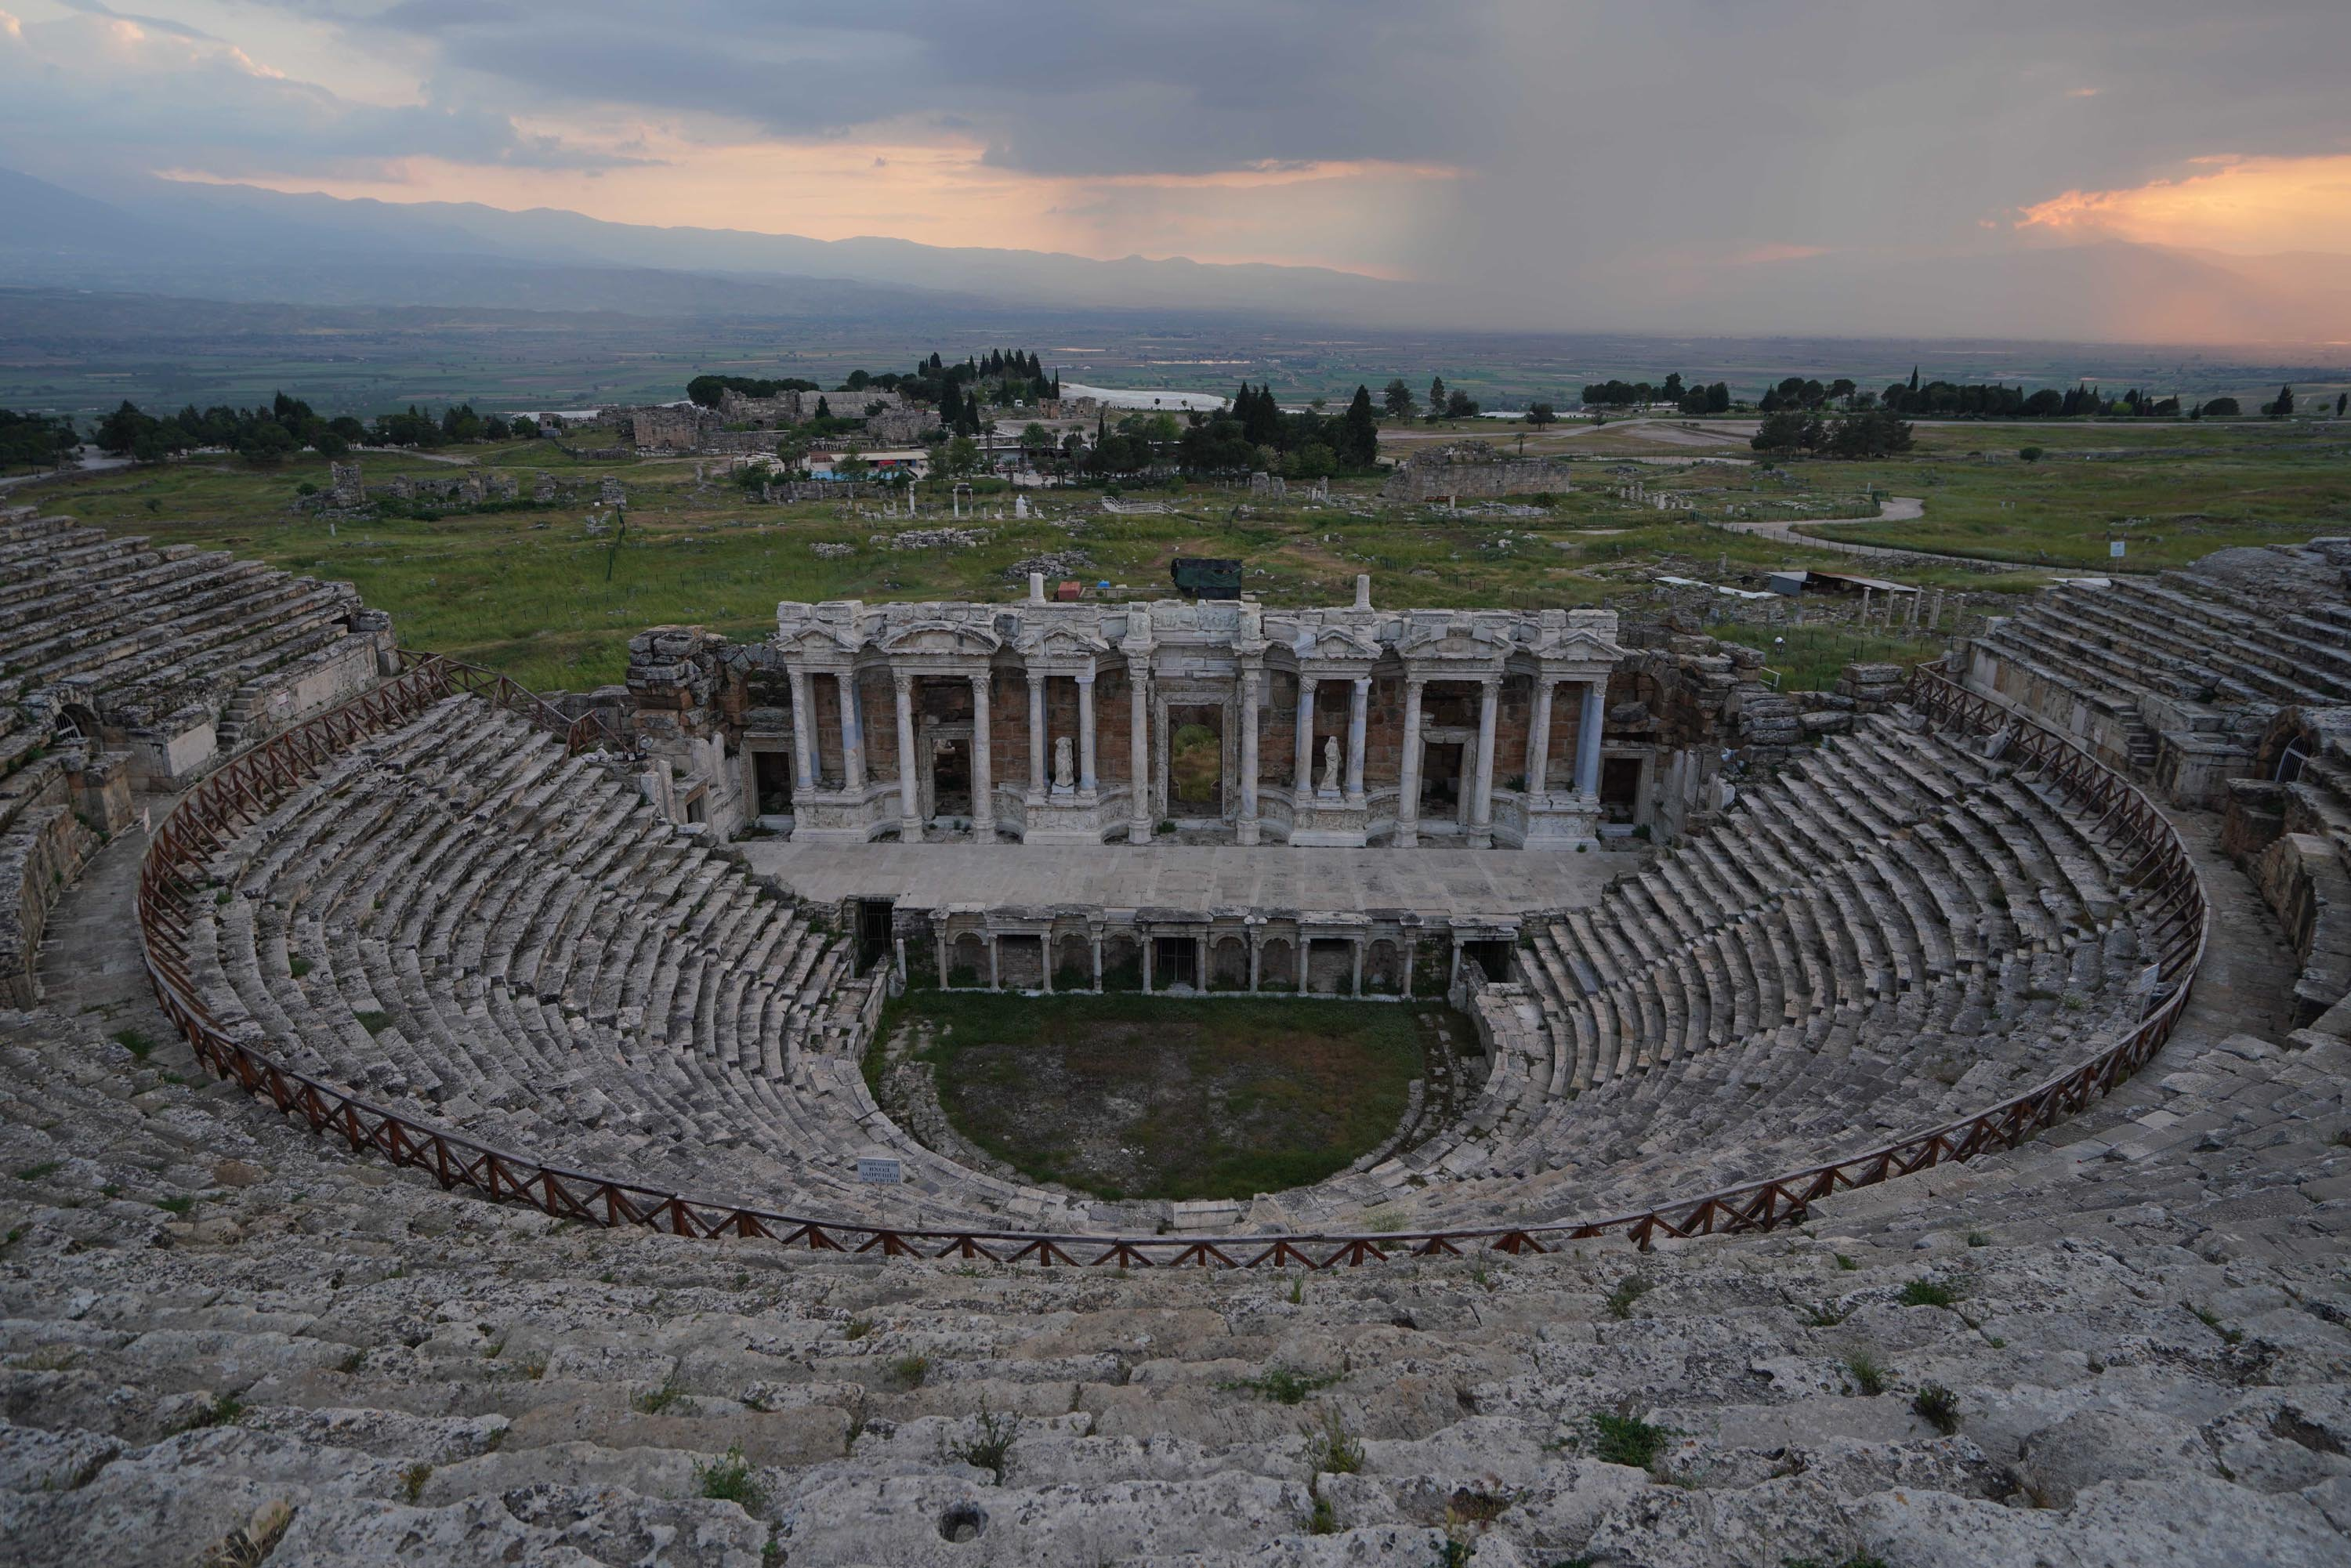 Murat Karahan will perform with the Antalya State Opera and Ballet Orchestra at the ancient theater of Hierapolis on May 23. (DHA Photo)